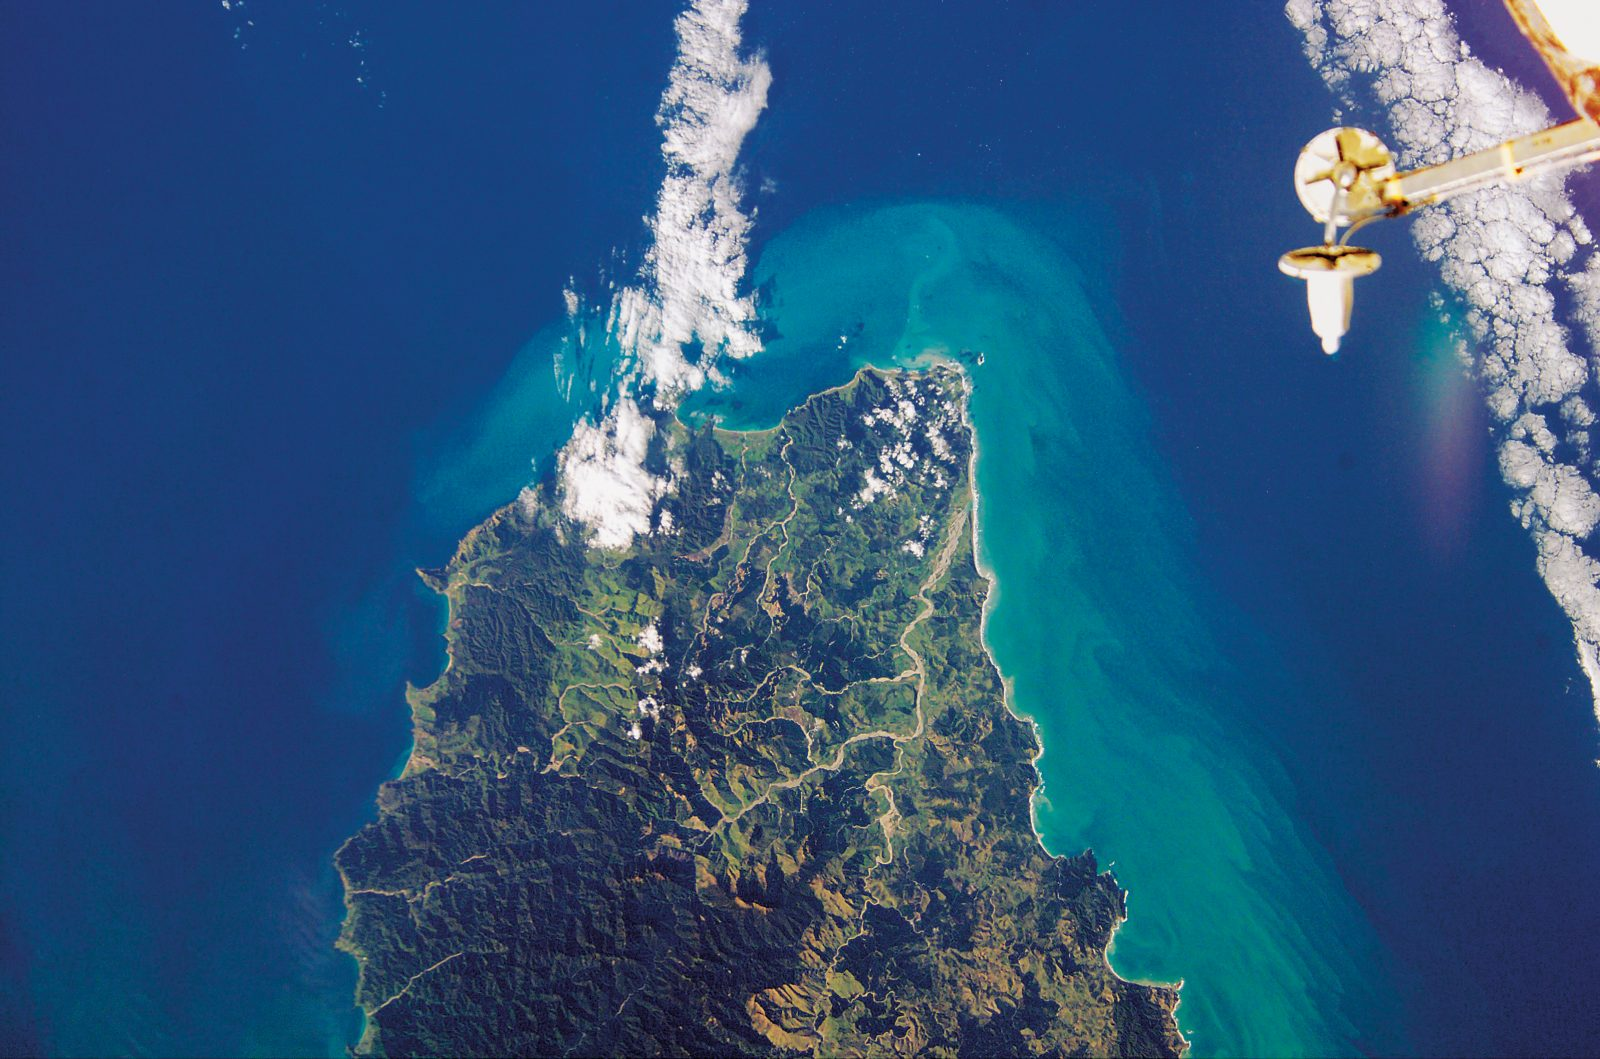 While the Waiapu River system is prominent in this photograph of East Cape taken from the International Space Station in November 2002, Mt Hikurangi, the highest summit in the Raukumara Range, is not at all obvious